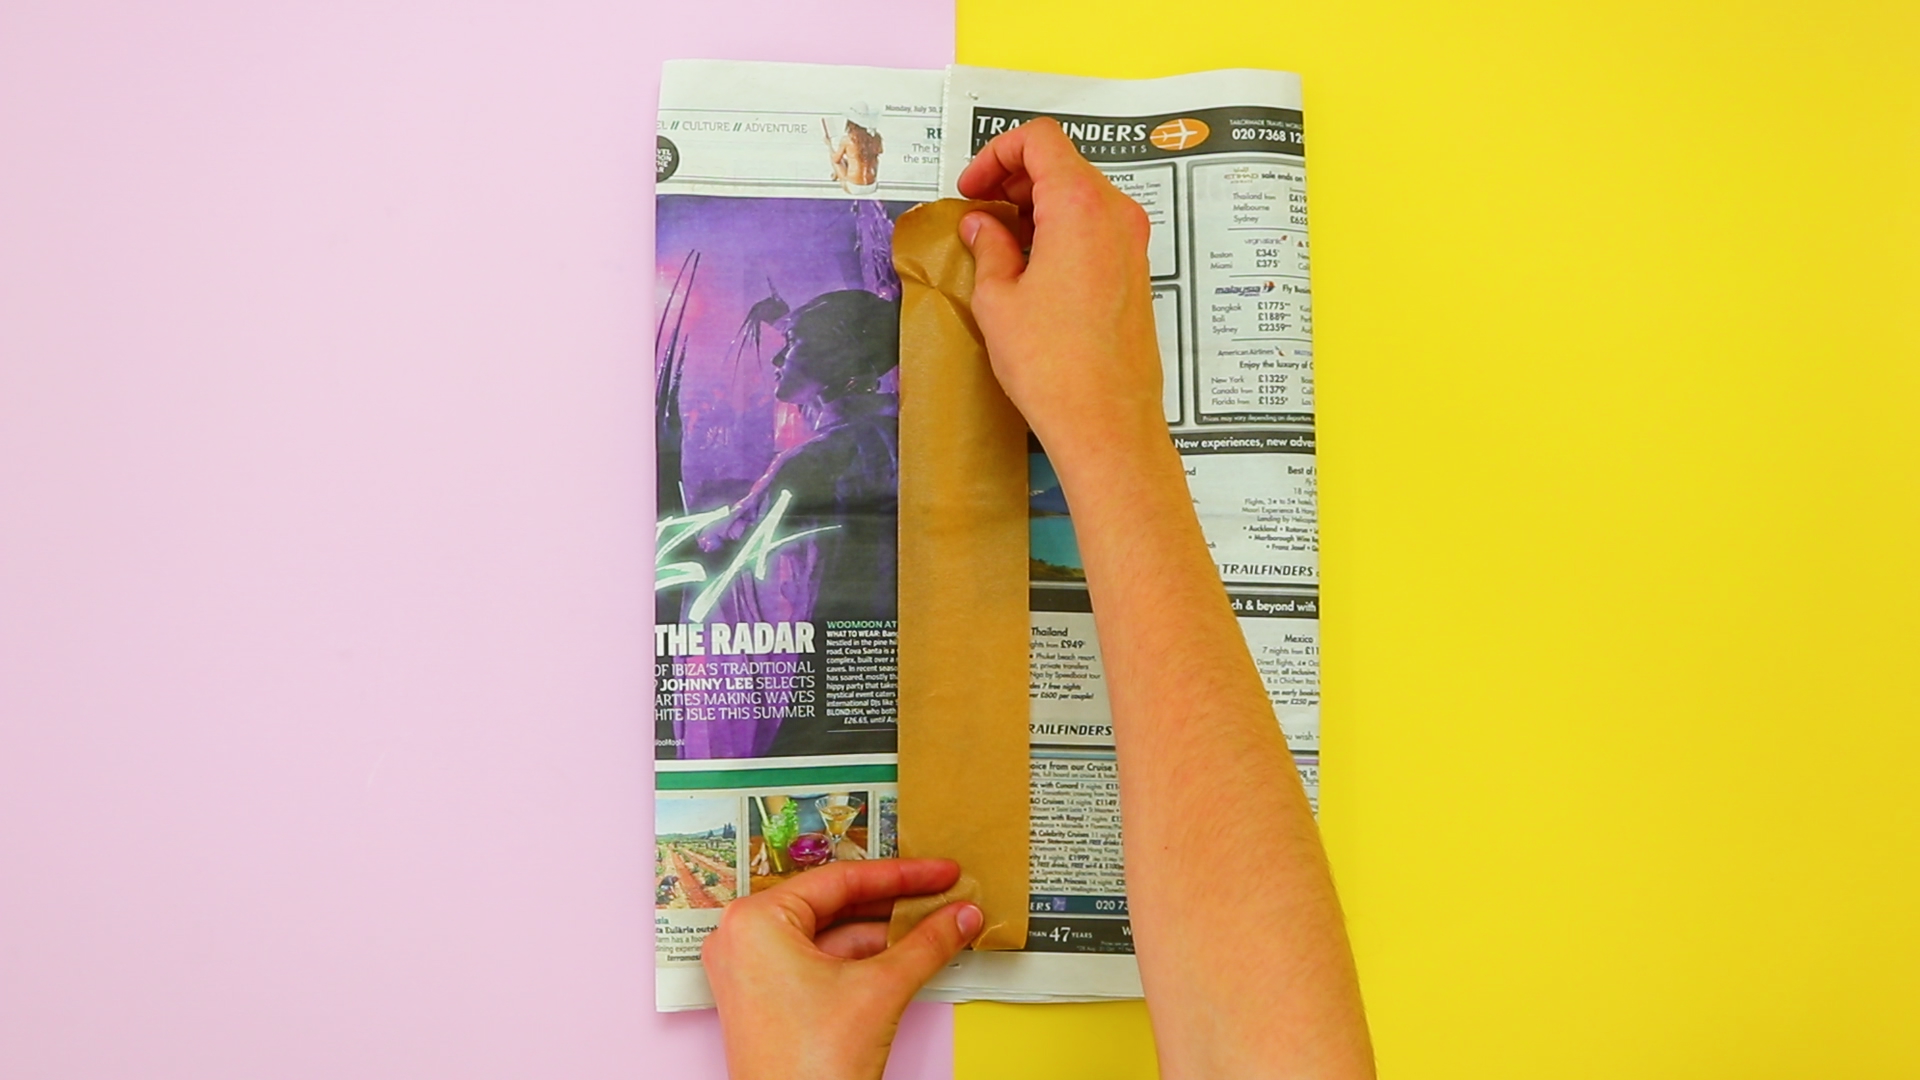 What you need: - 1) 3 double sheets of old newspaper.2) Some biodegradable tape.3) 5 minutes of your time.Watch the video to find out how to assemble your bin.